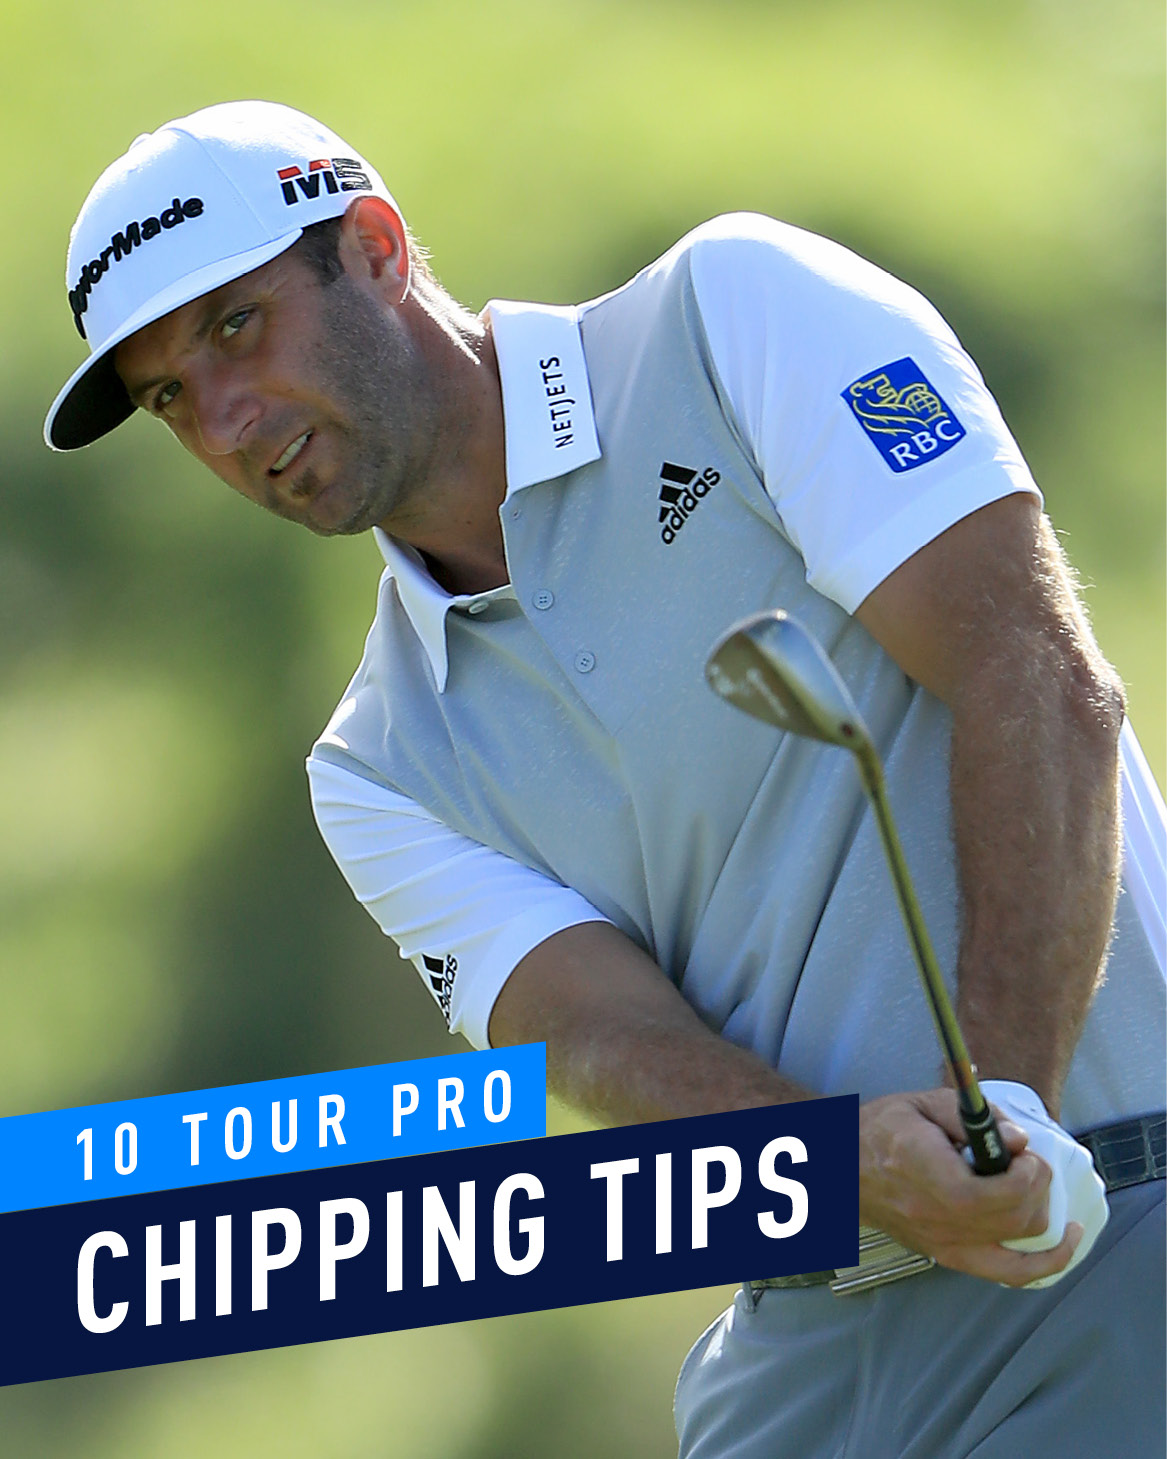 Chipping Tips